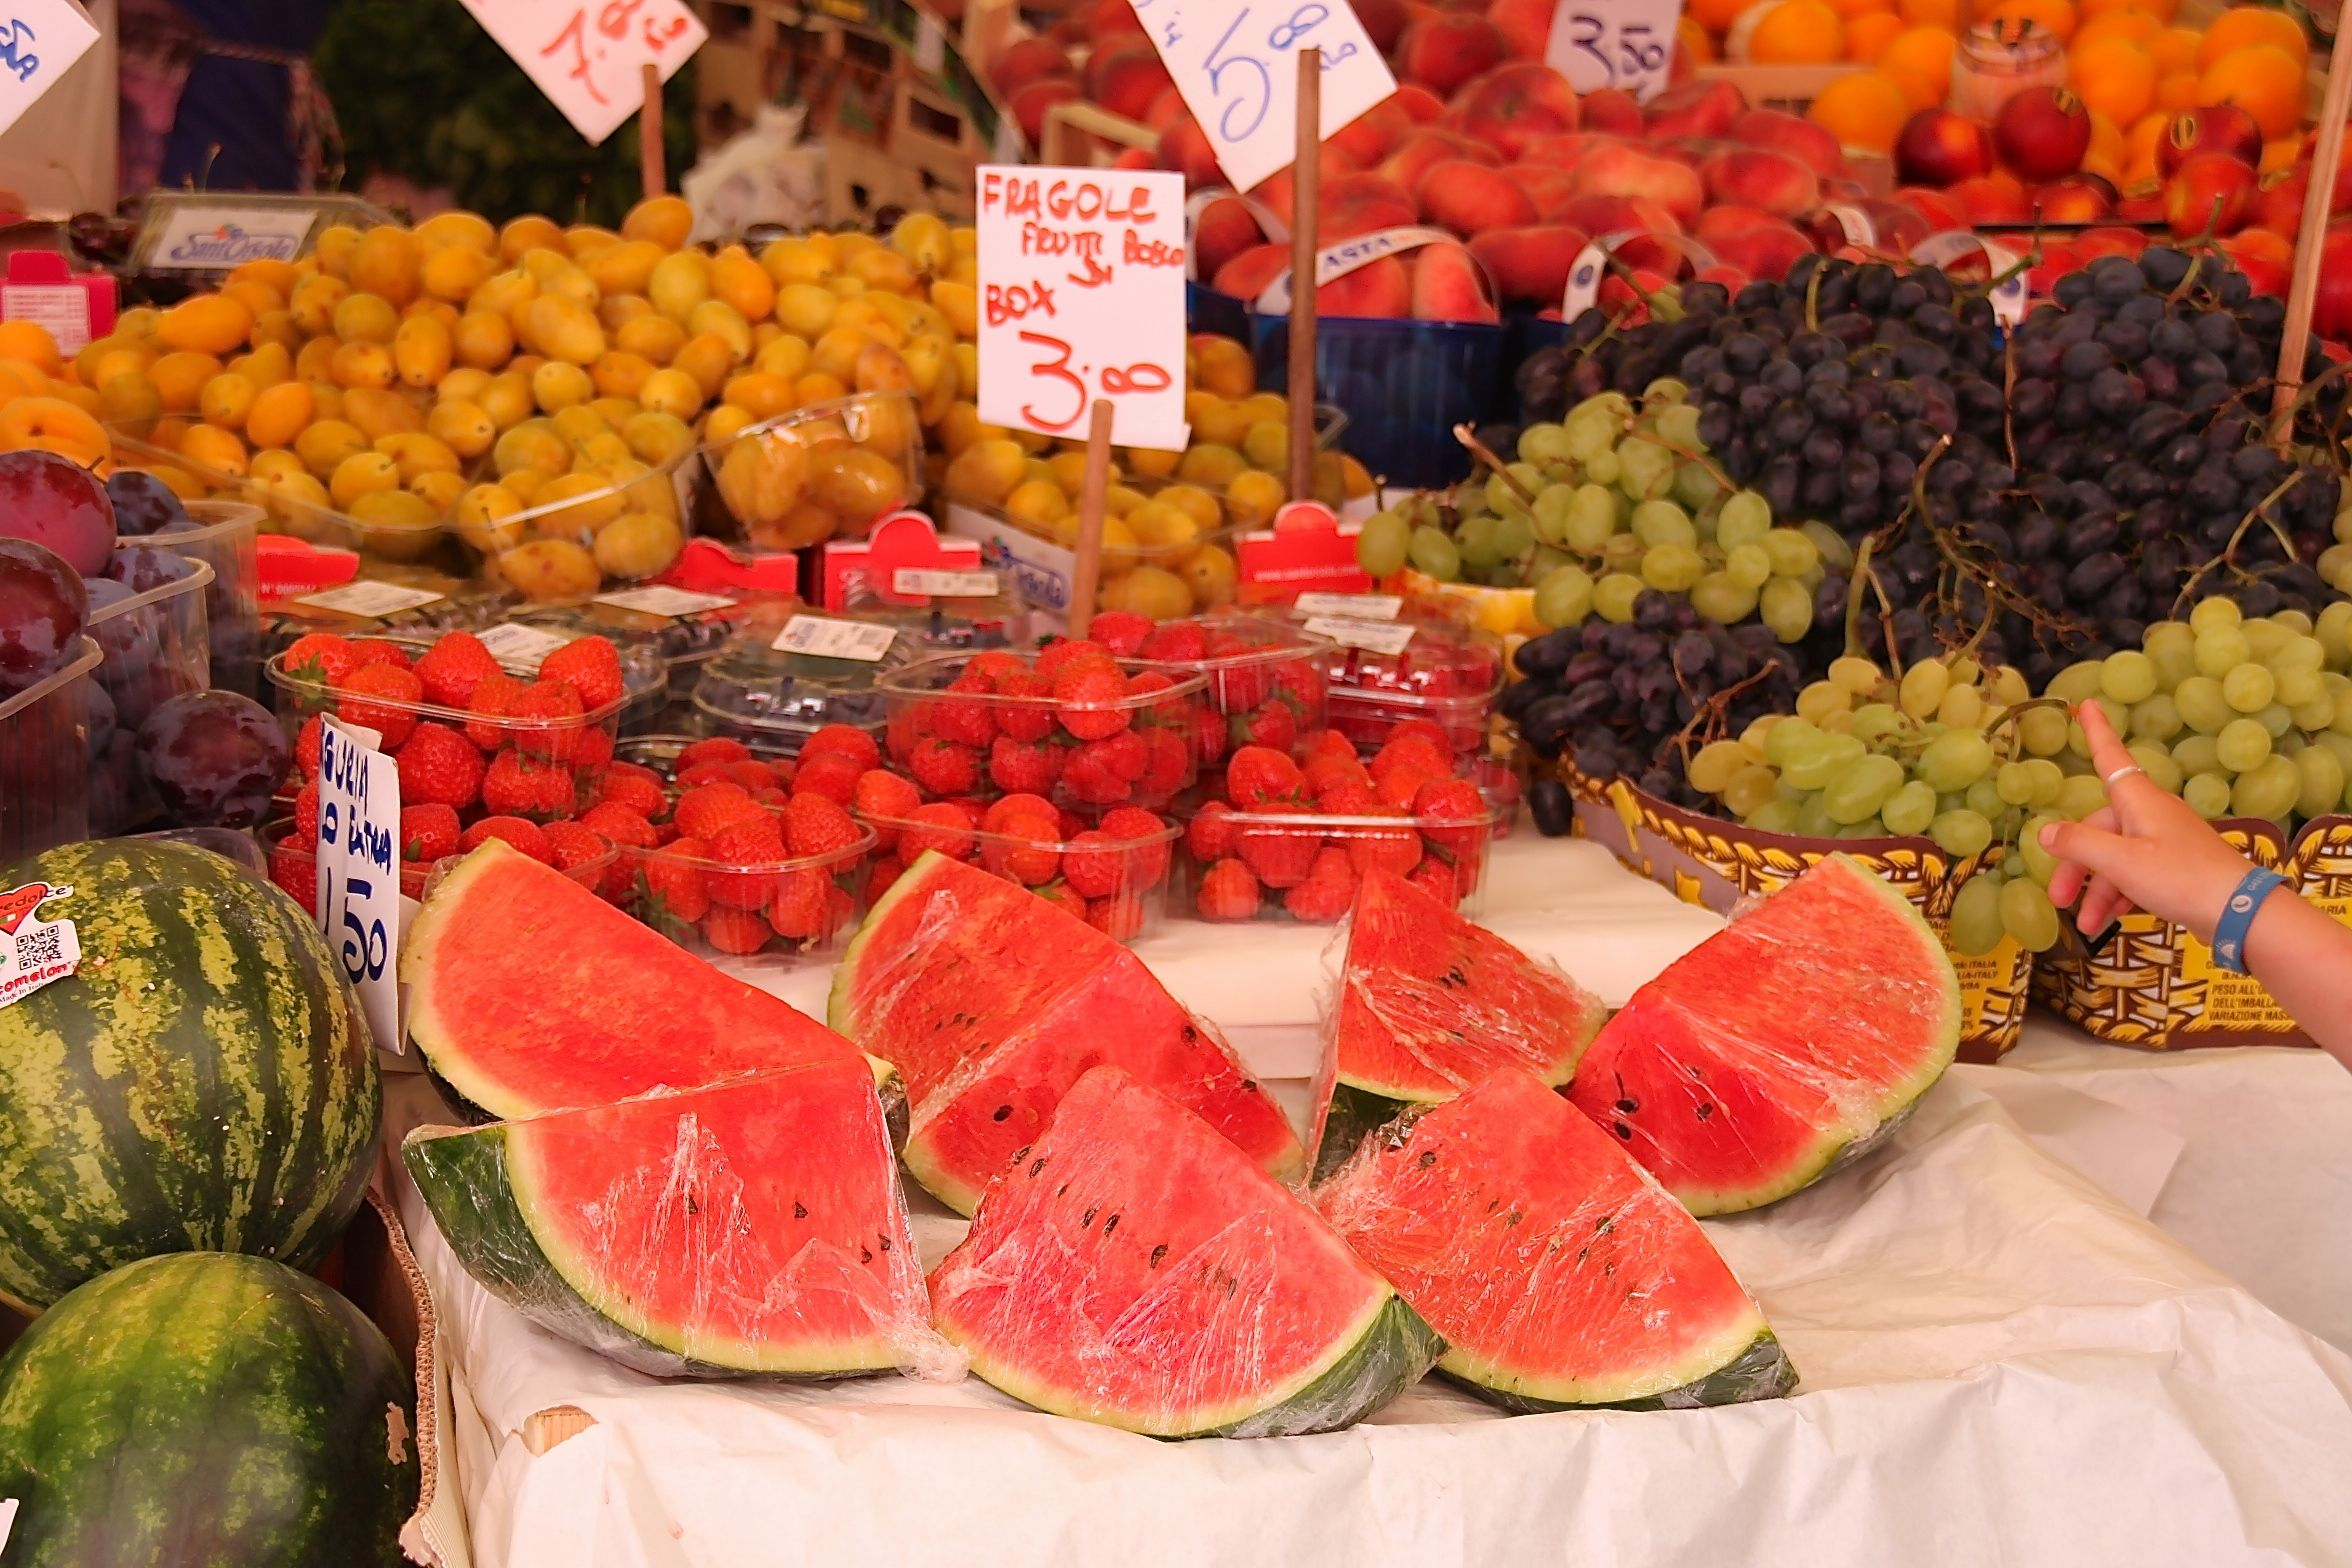 Photo of large watermelon slices in the Rialto market, Venice, Italy